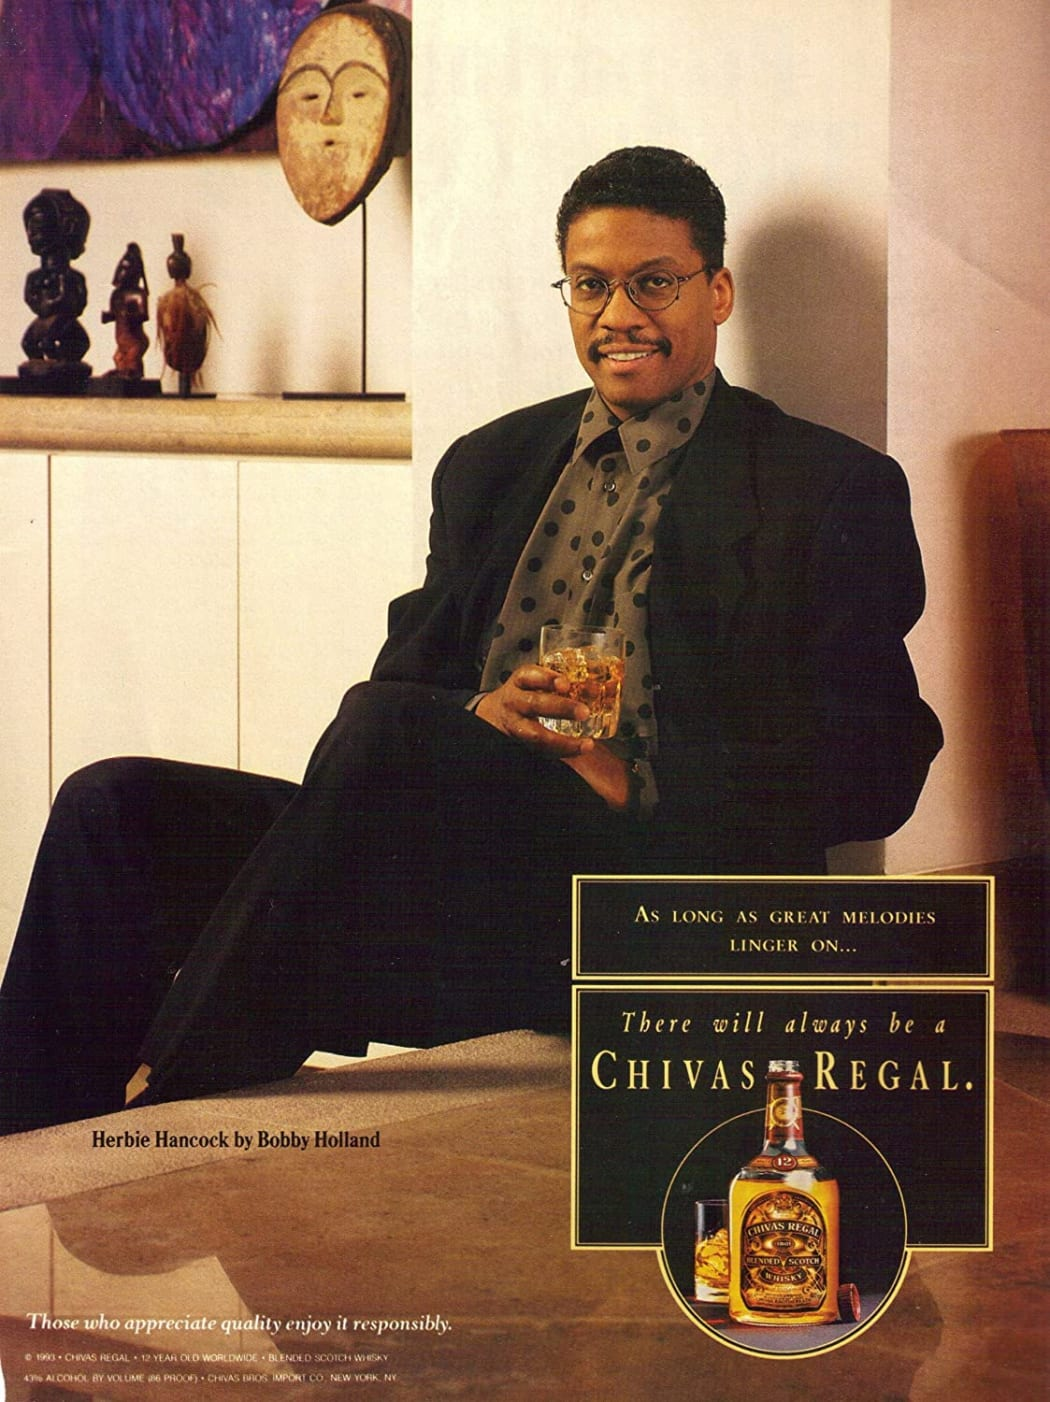 African art in a Chivas Regal advertisement from 1995